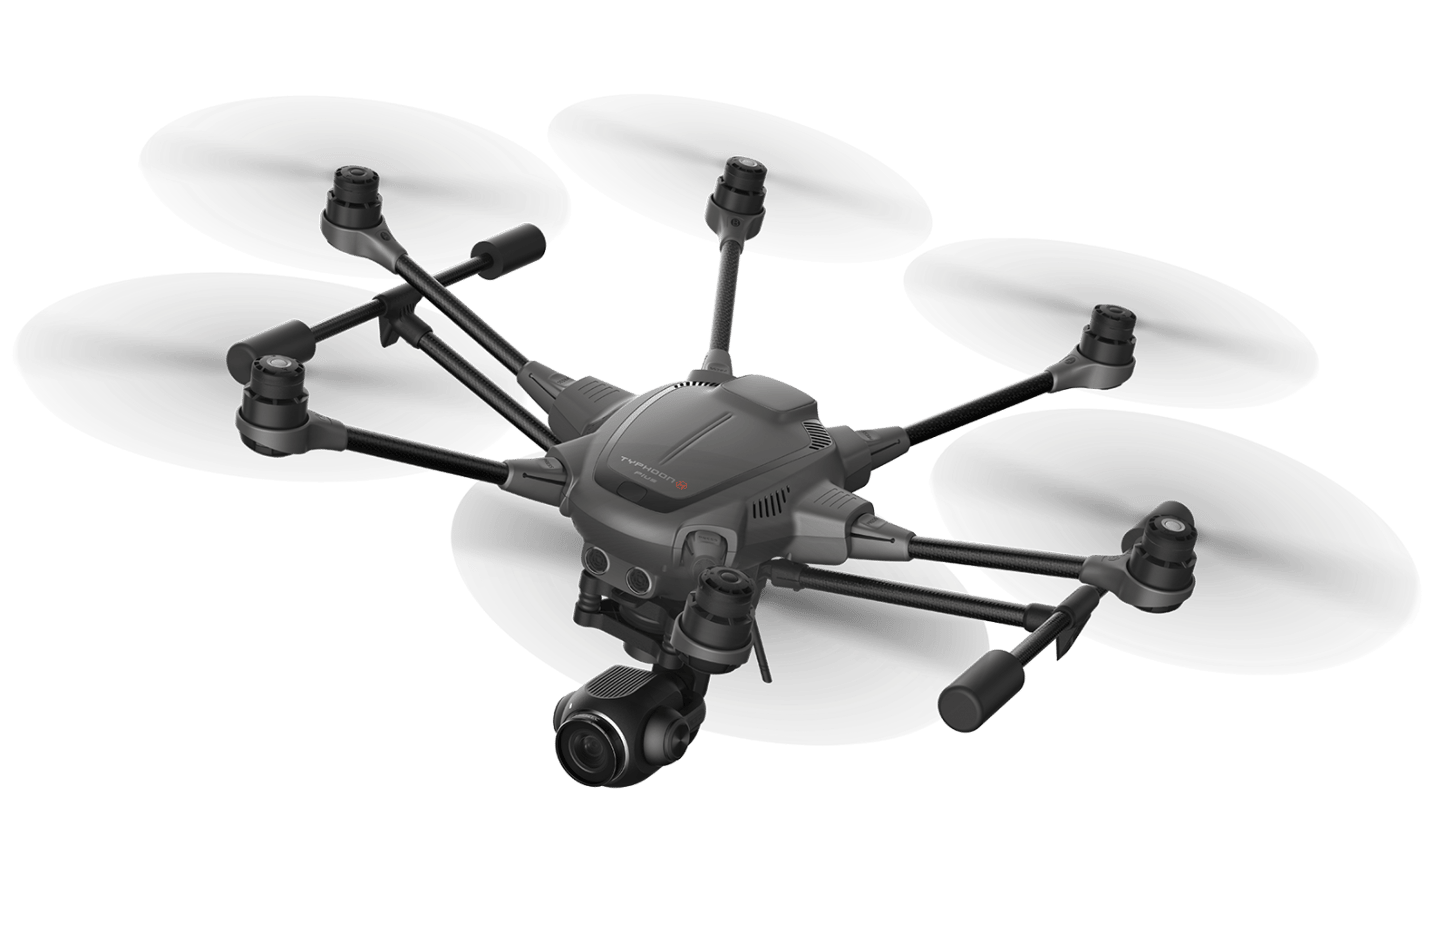 Yuneec's Typhoon H Plus is a 4K camera drone with retractable landing gear